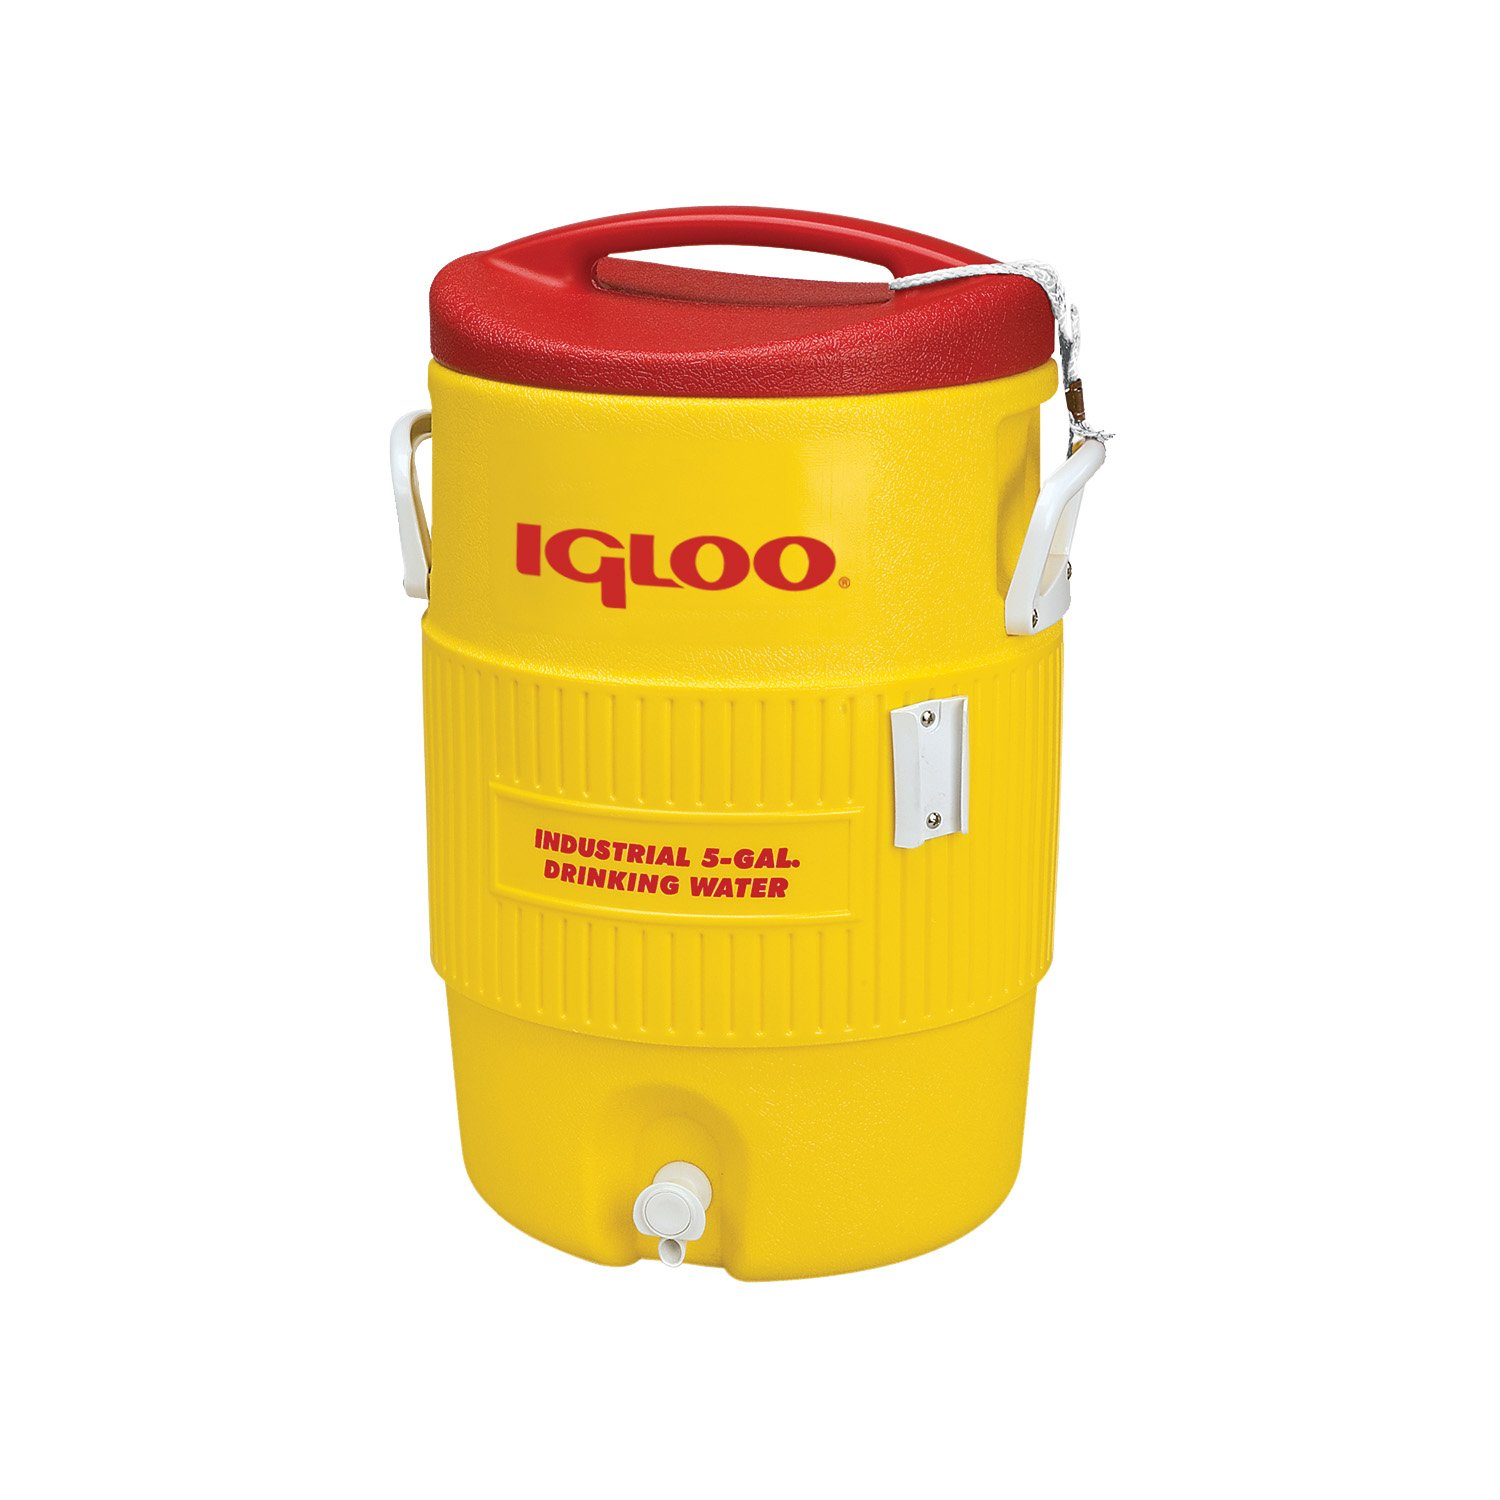 Safety Products Inc Igloo Water Coolers Accessories